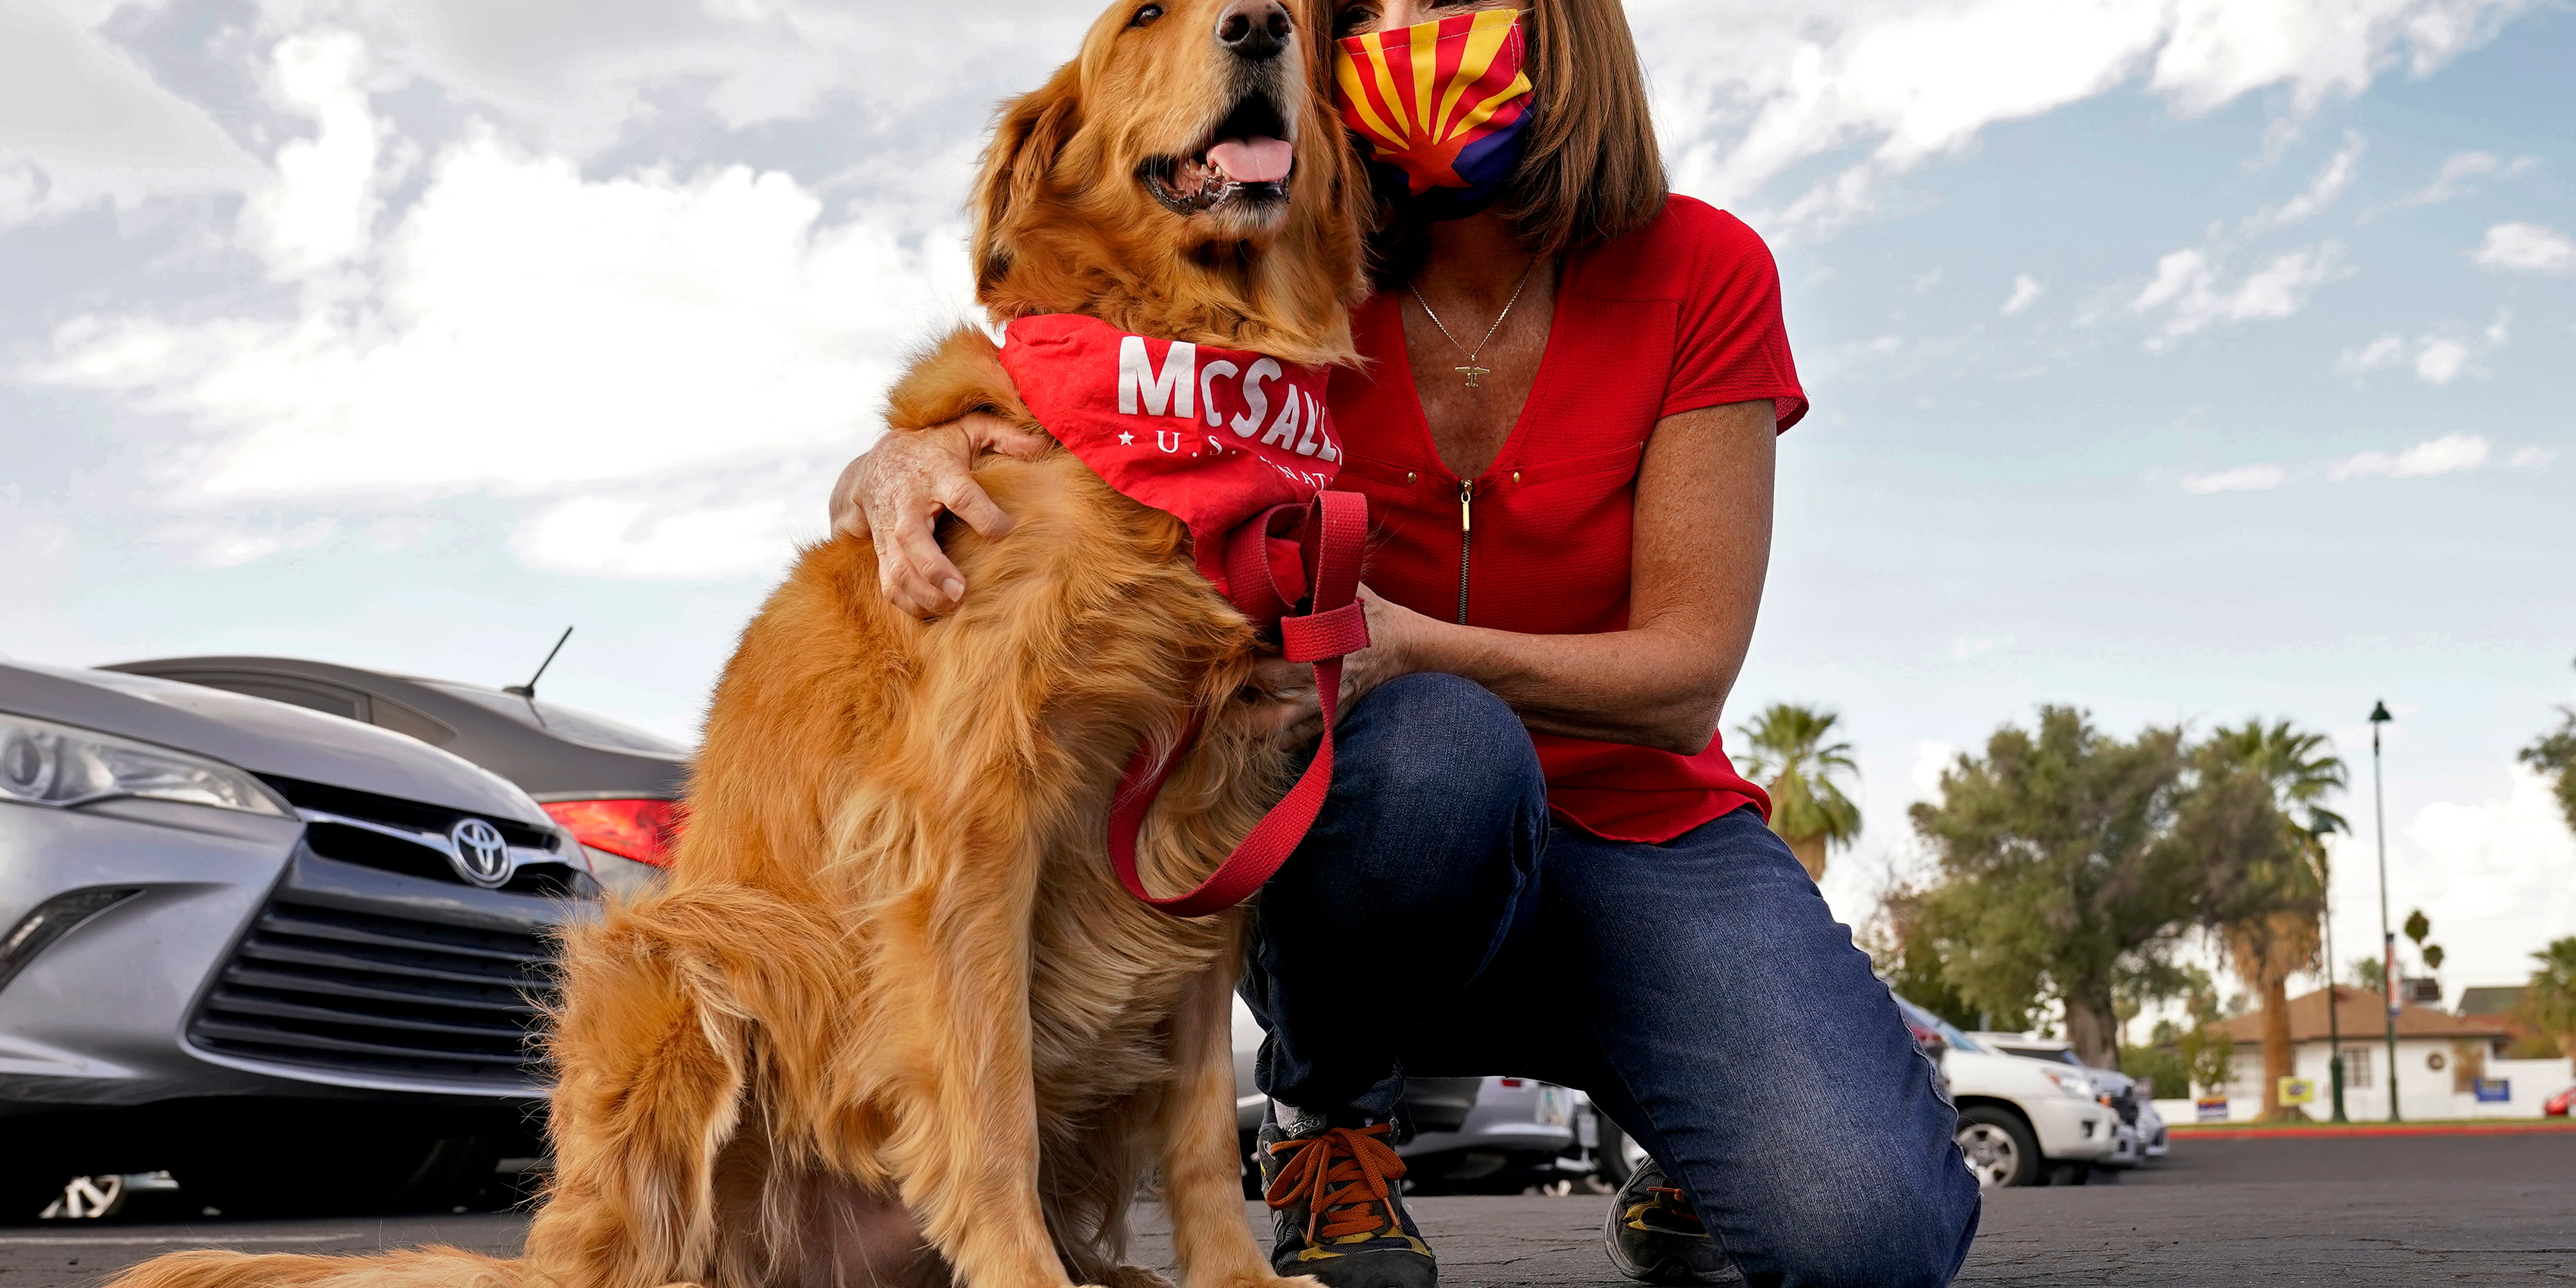 U.S. Sen. Martha McSally, R-Ariz., hugs her dog Boomer prior to greeting voters at a polling station, Tuesday, Nov. 3, 2020, in Mesa, Ariz. (AP Photo/Matt York)